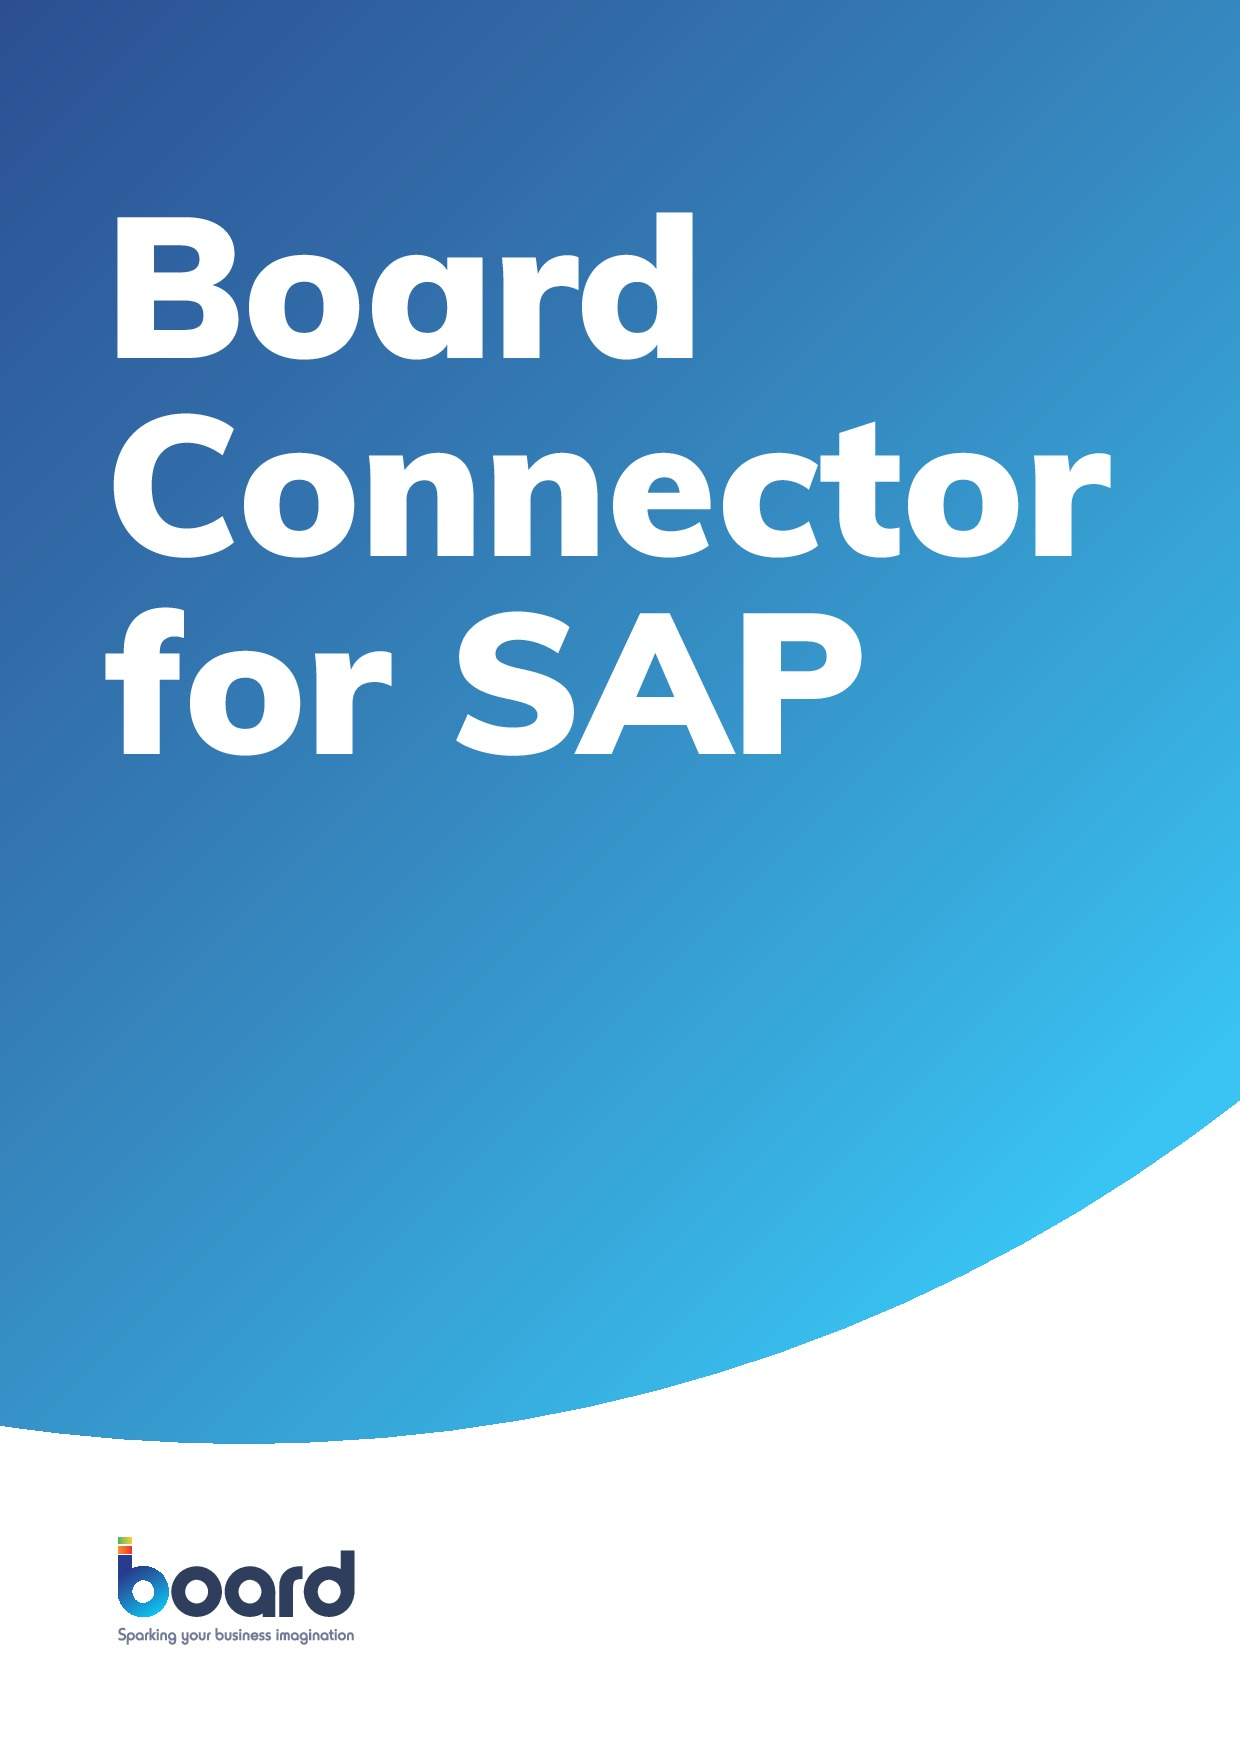 Board Connector for SAP | Page 1